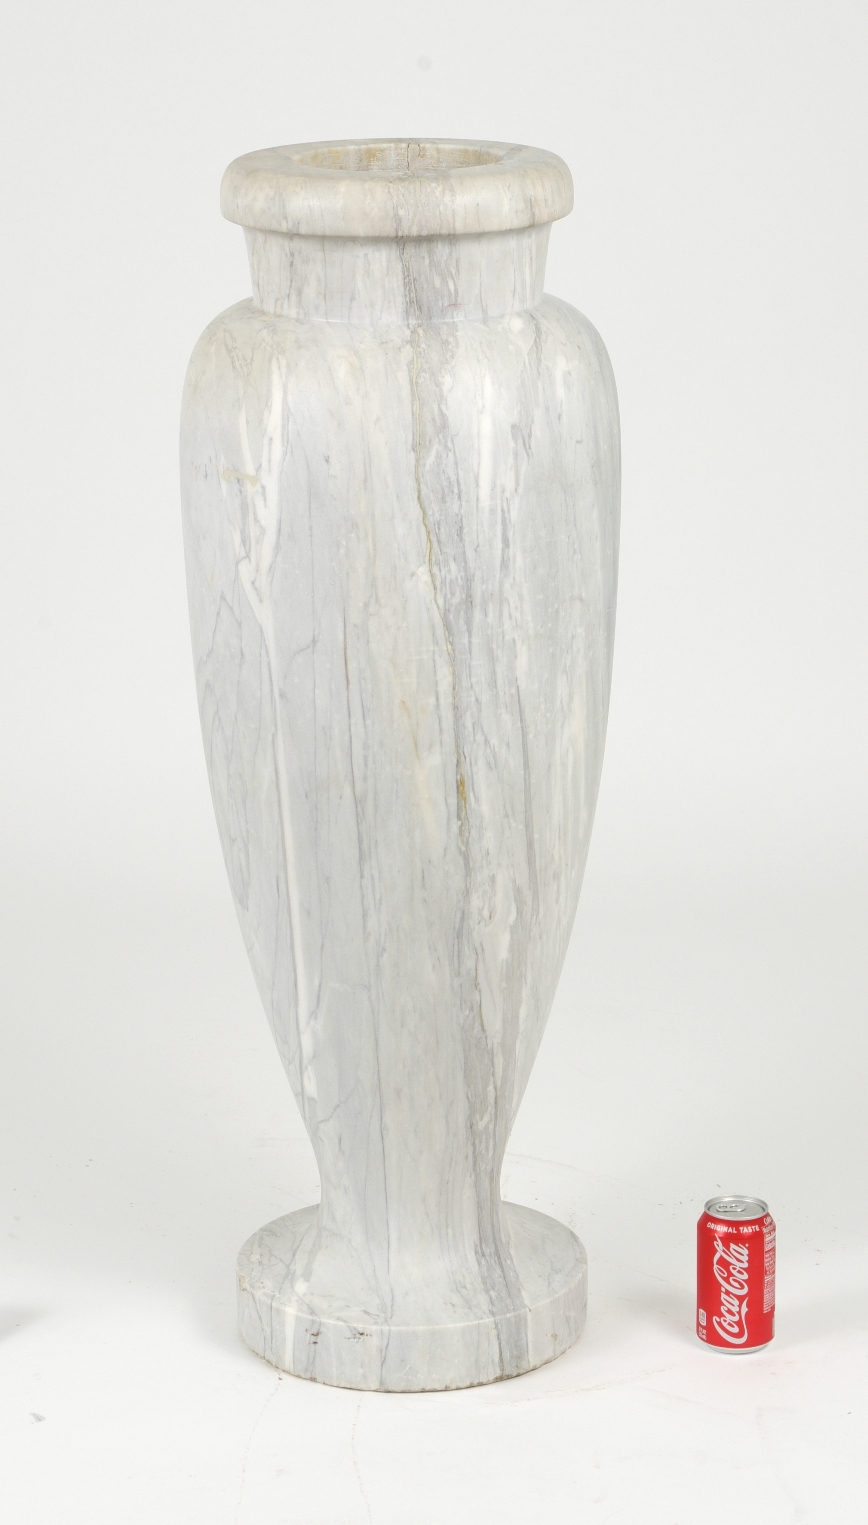 Art Deco Carrara Marble Floor Vase, c. 1930